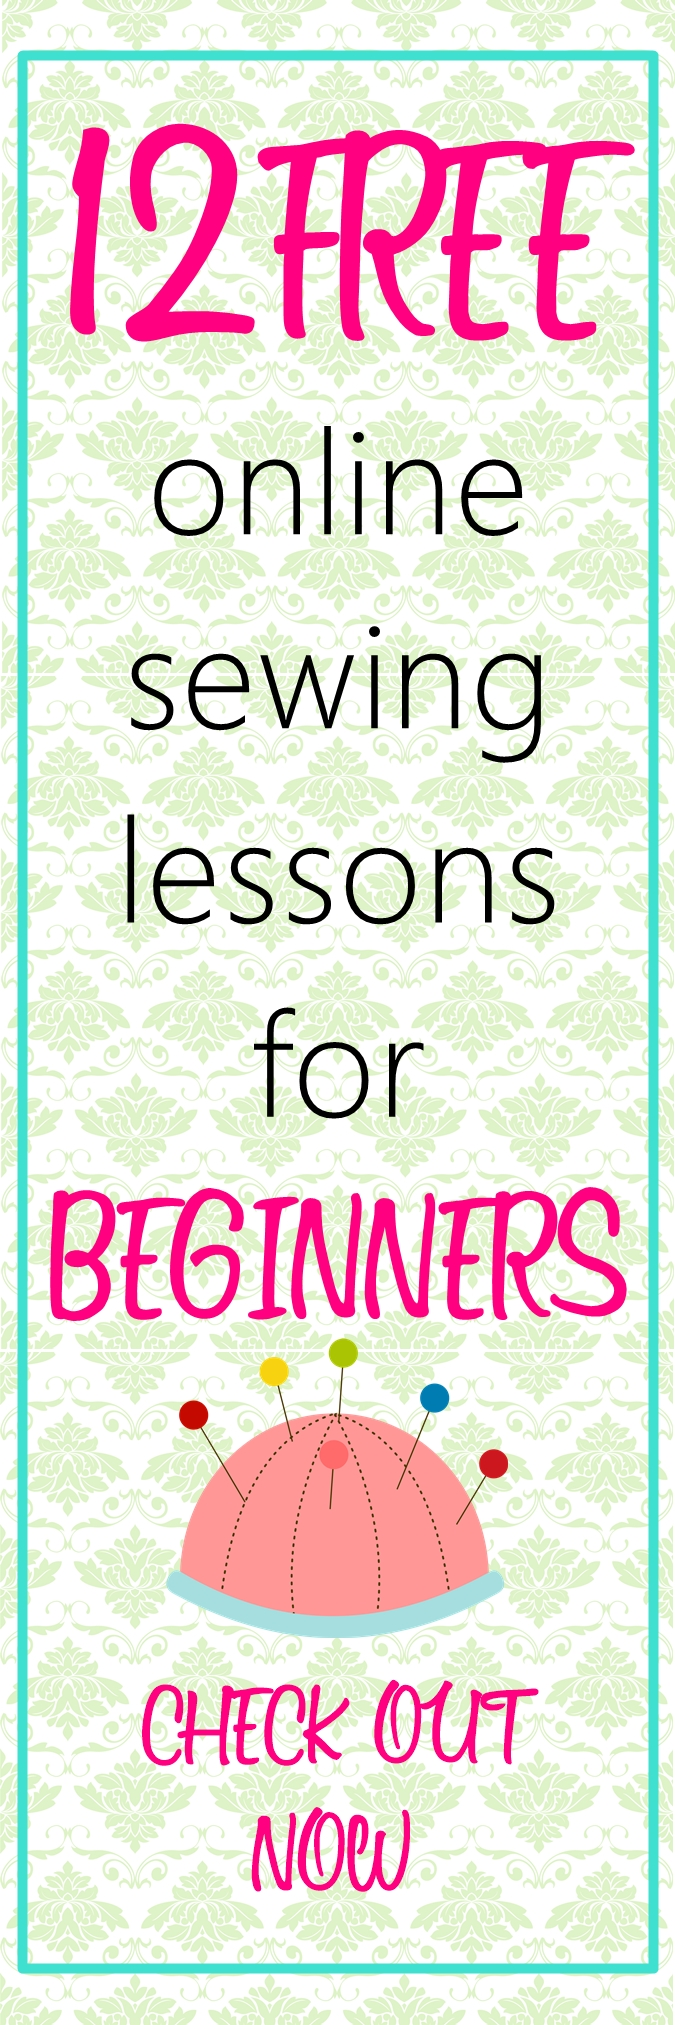 Free Online Sewing Classes for Beginners!